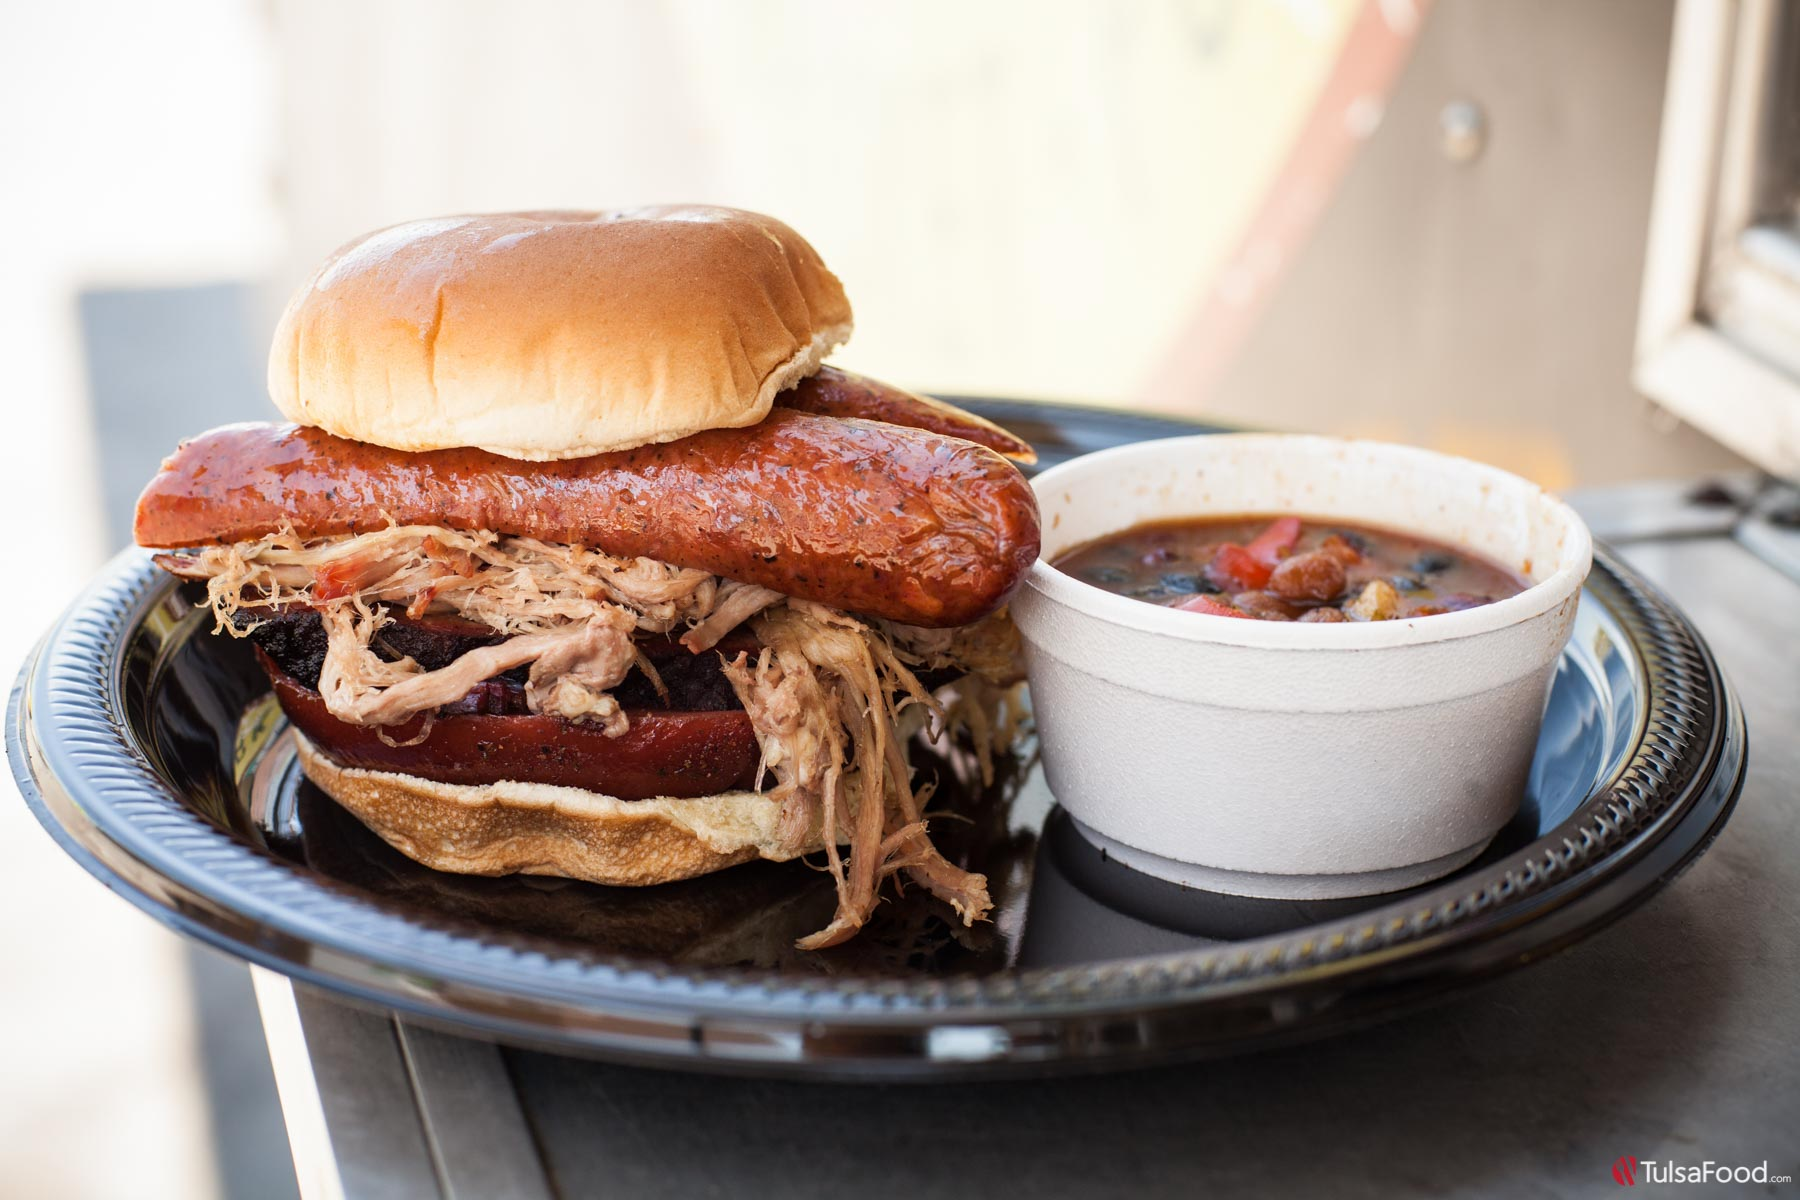 Tulsas Best BBQ Houses An honest look at why Tulsa may be the